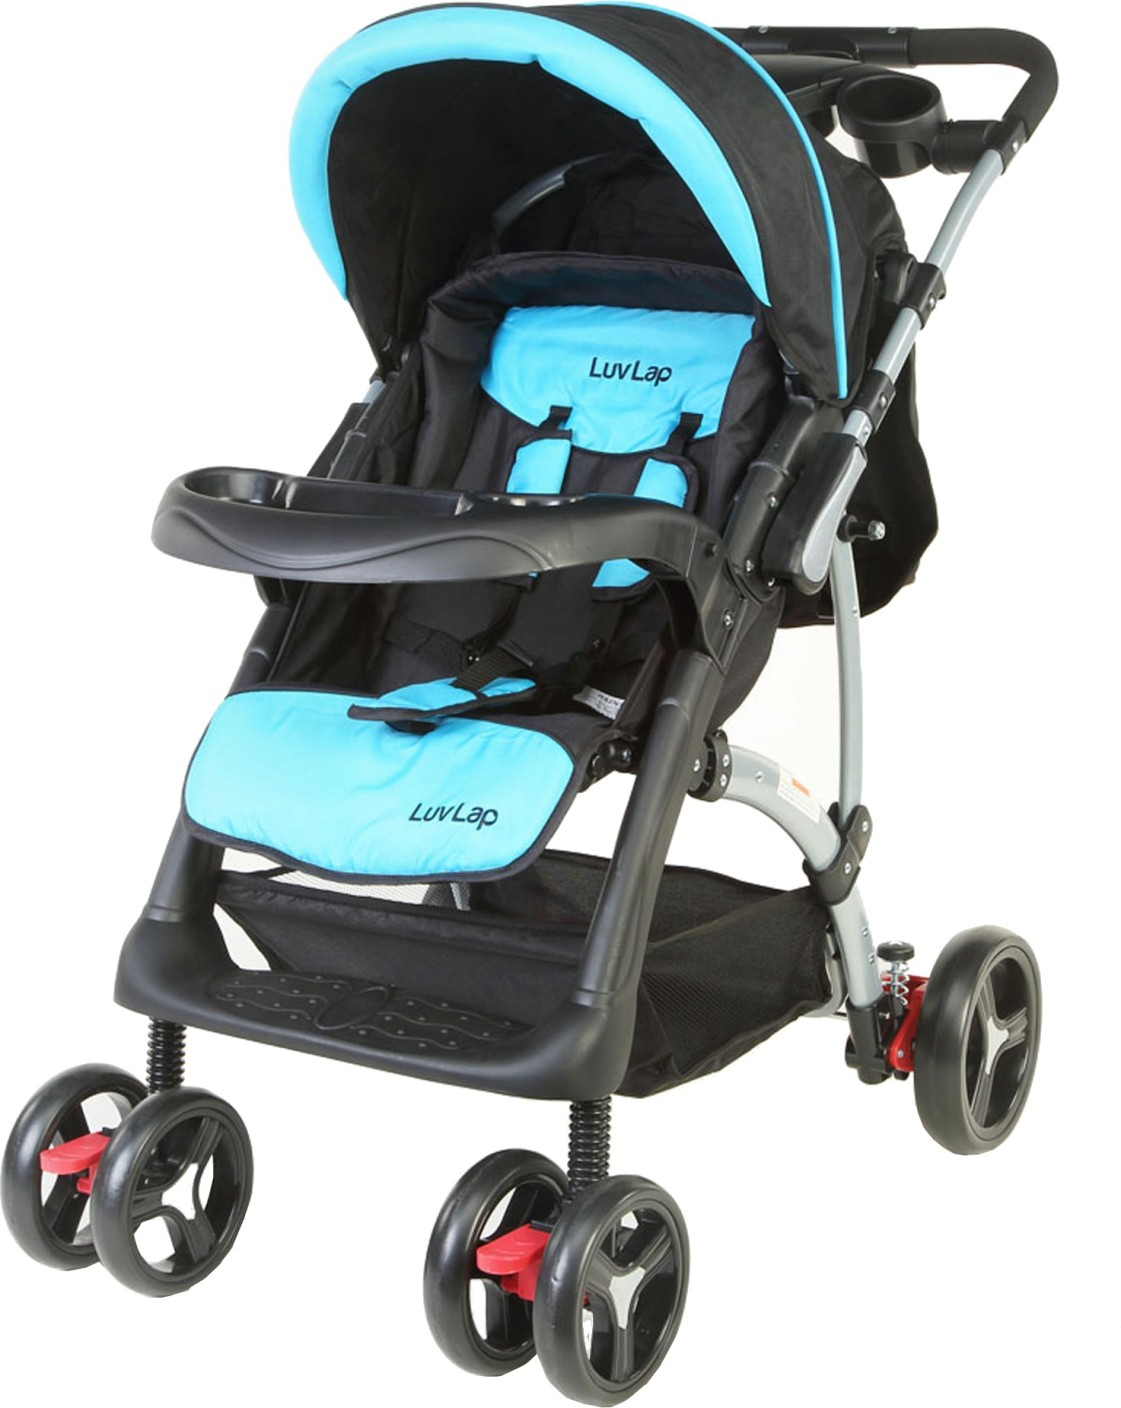 A pram is a type of carriage stroller, which allows the infant to lay flat, rather than being strapped in a sitting position. If you are unsure of the type of stroller that you would like to get for your infant, 3-in-1 prams are a great option.